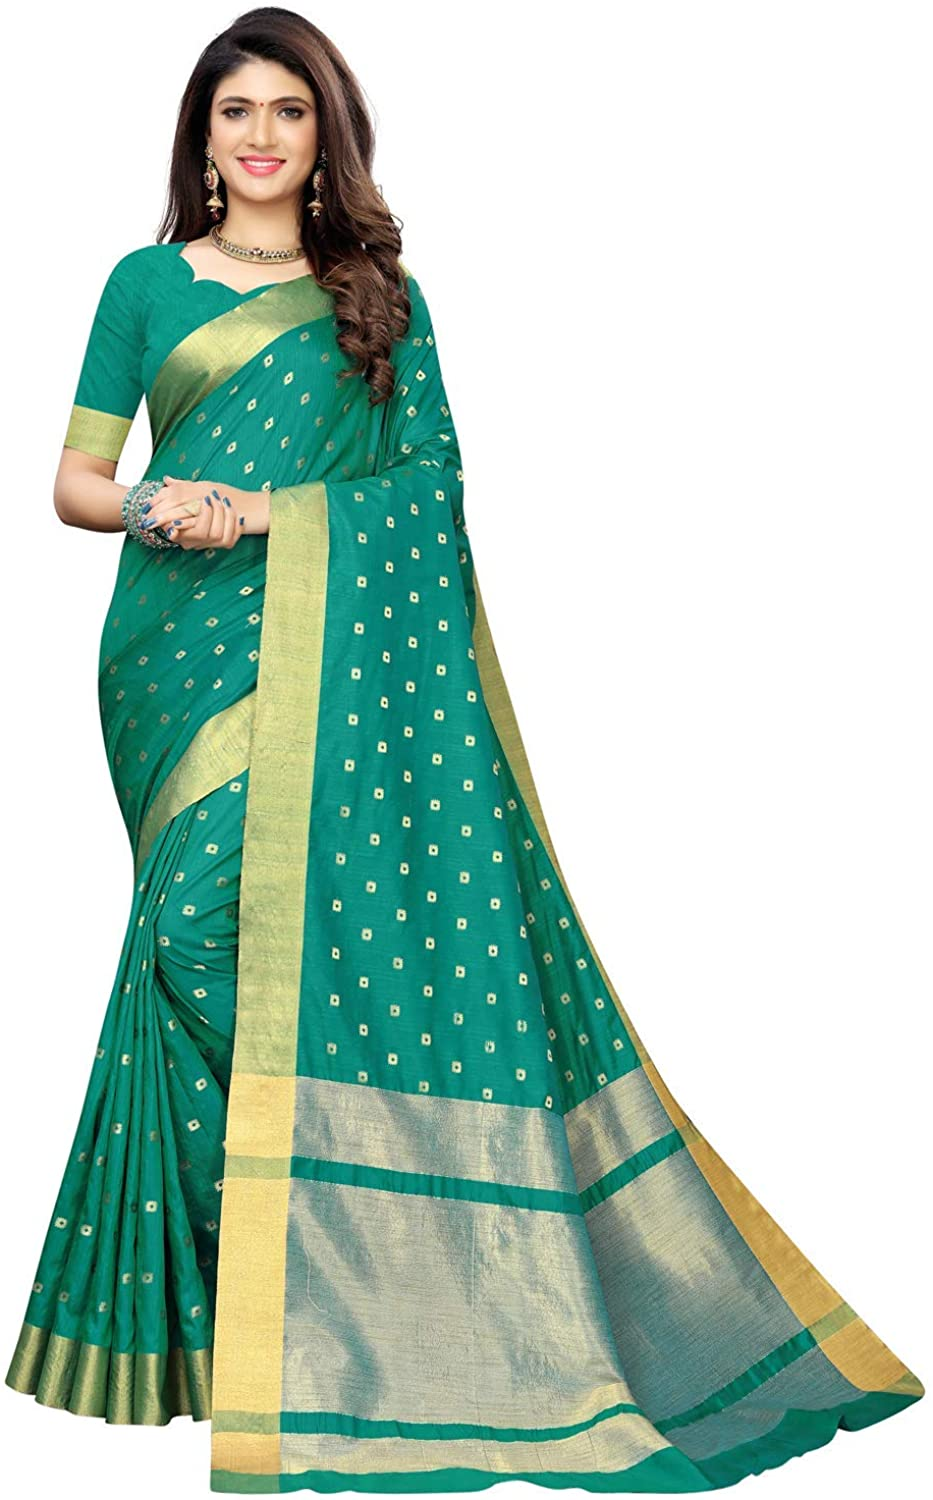 Indian Decor & Attire Women's Chanderi Kanjivaram Saree with Blouse Turquoise